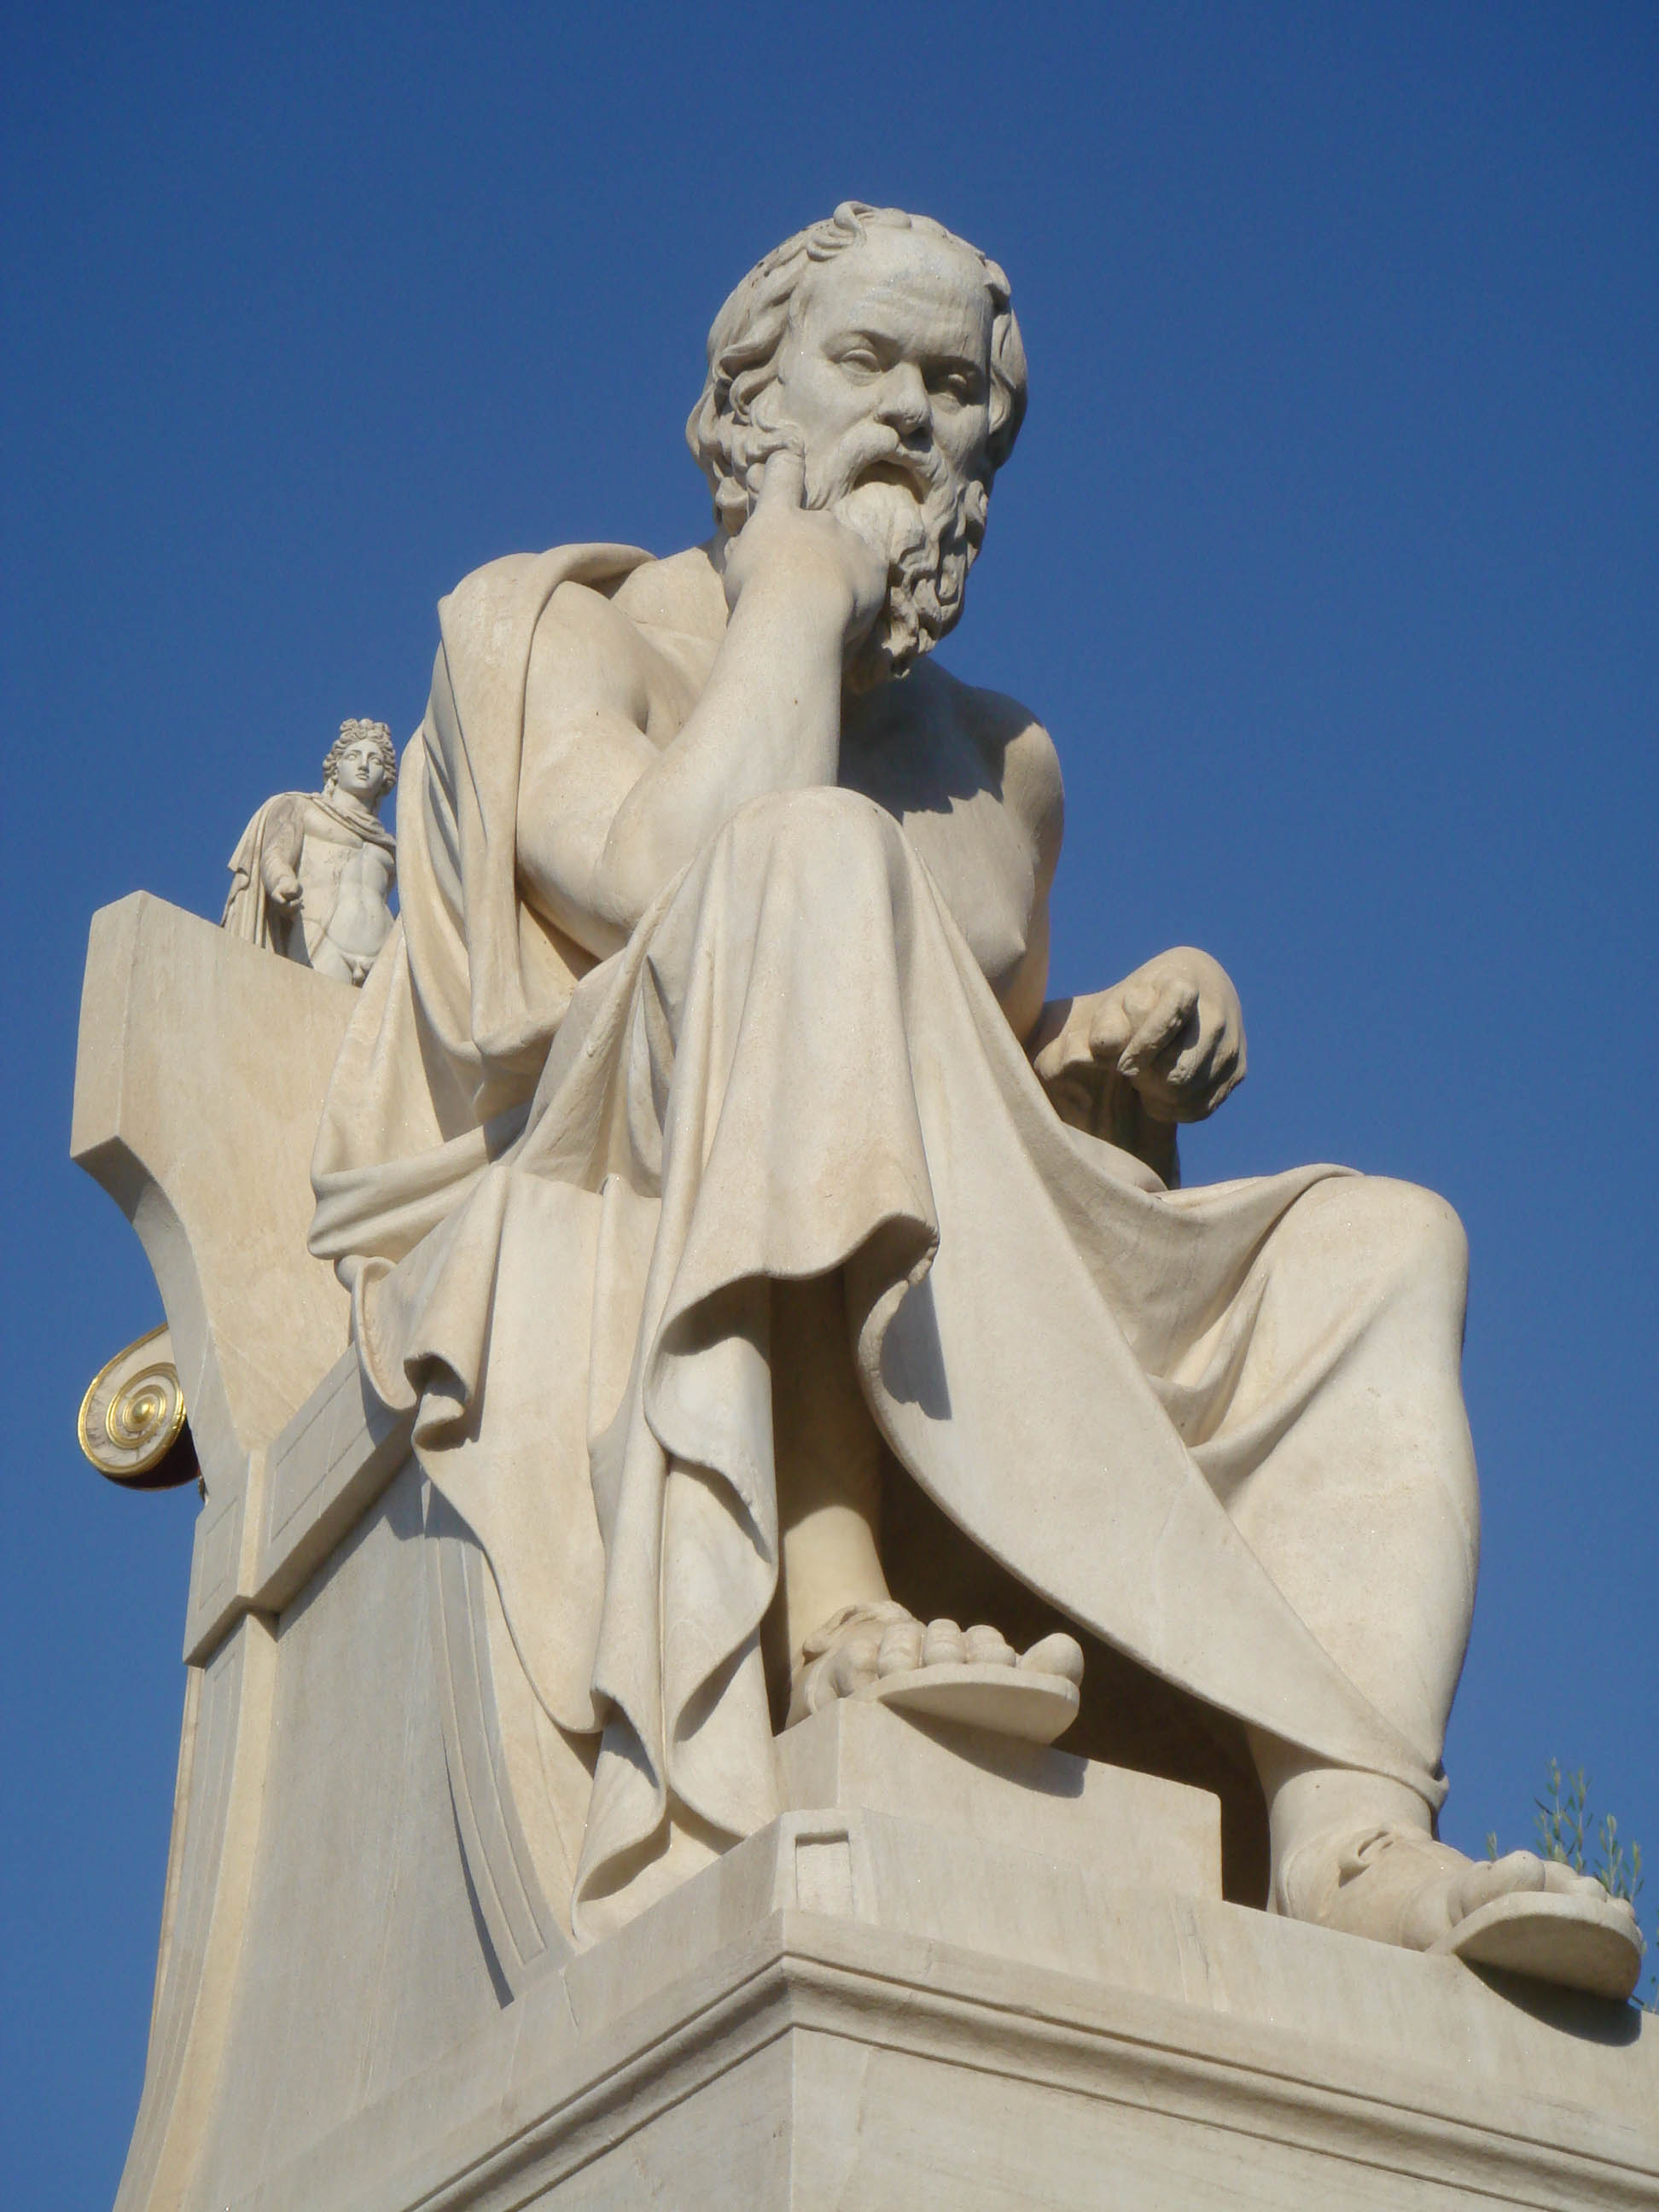 We owe a cock to Asclepius - philosophy socrates